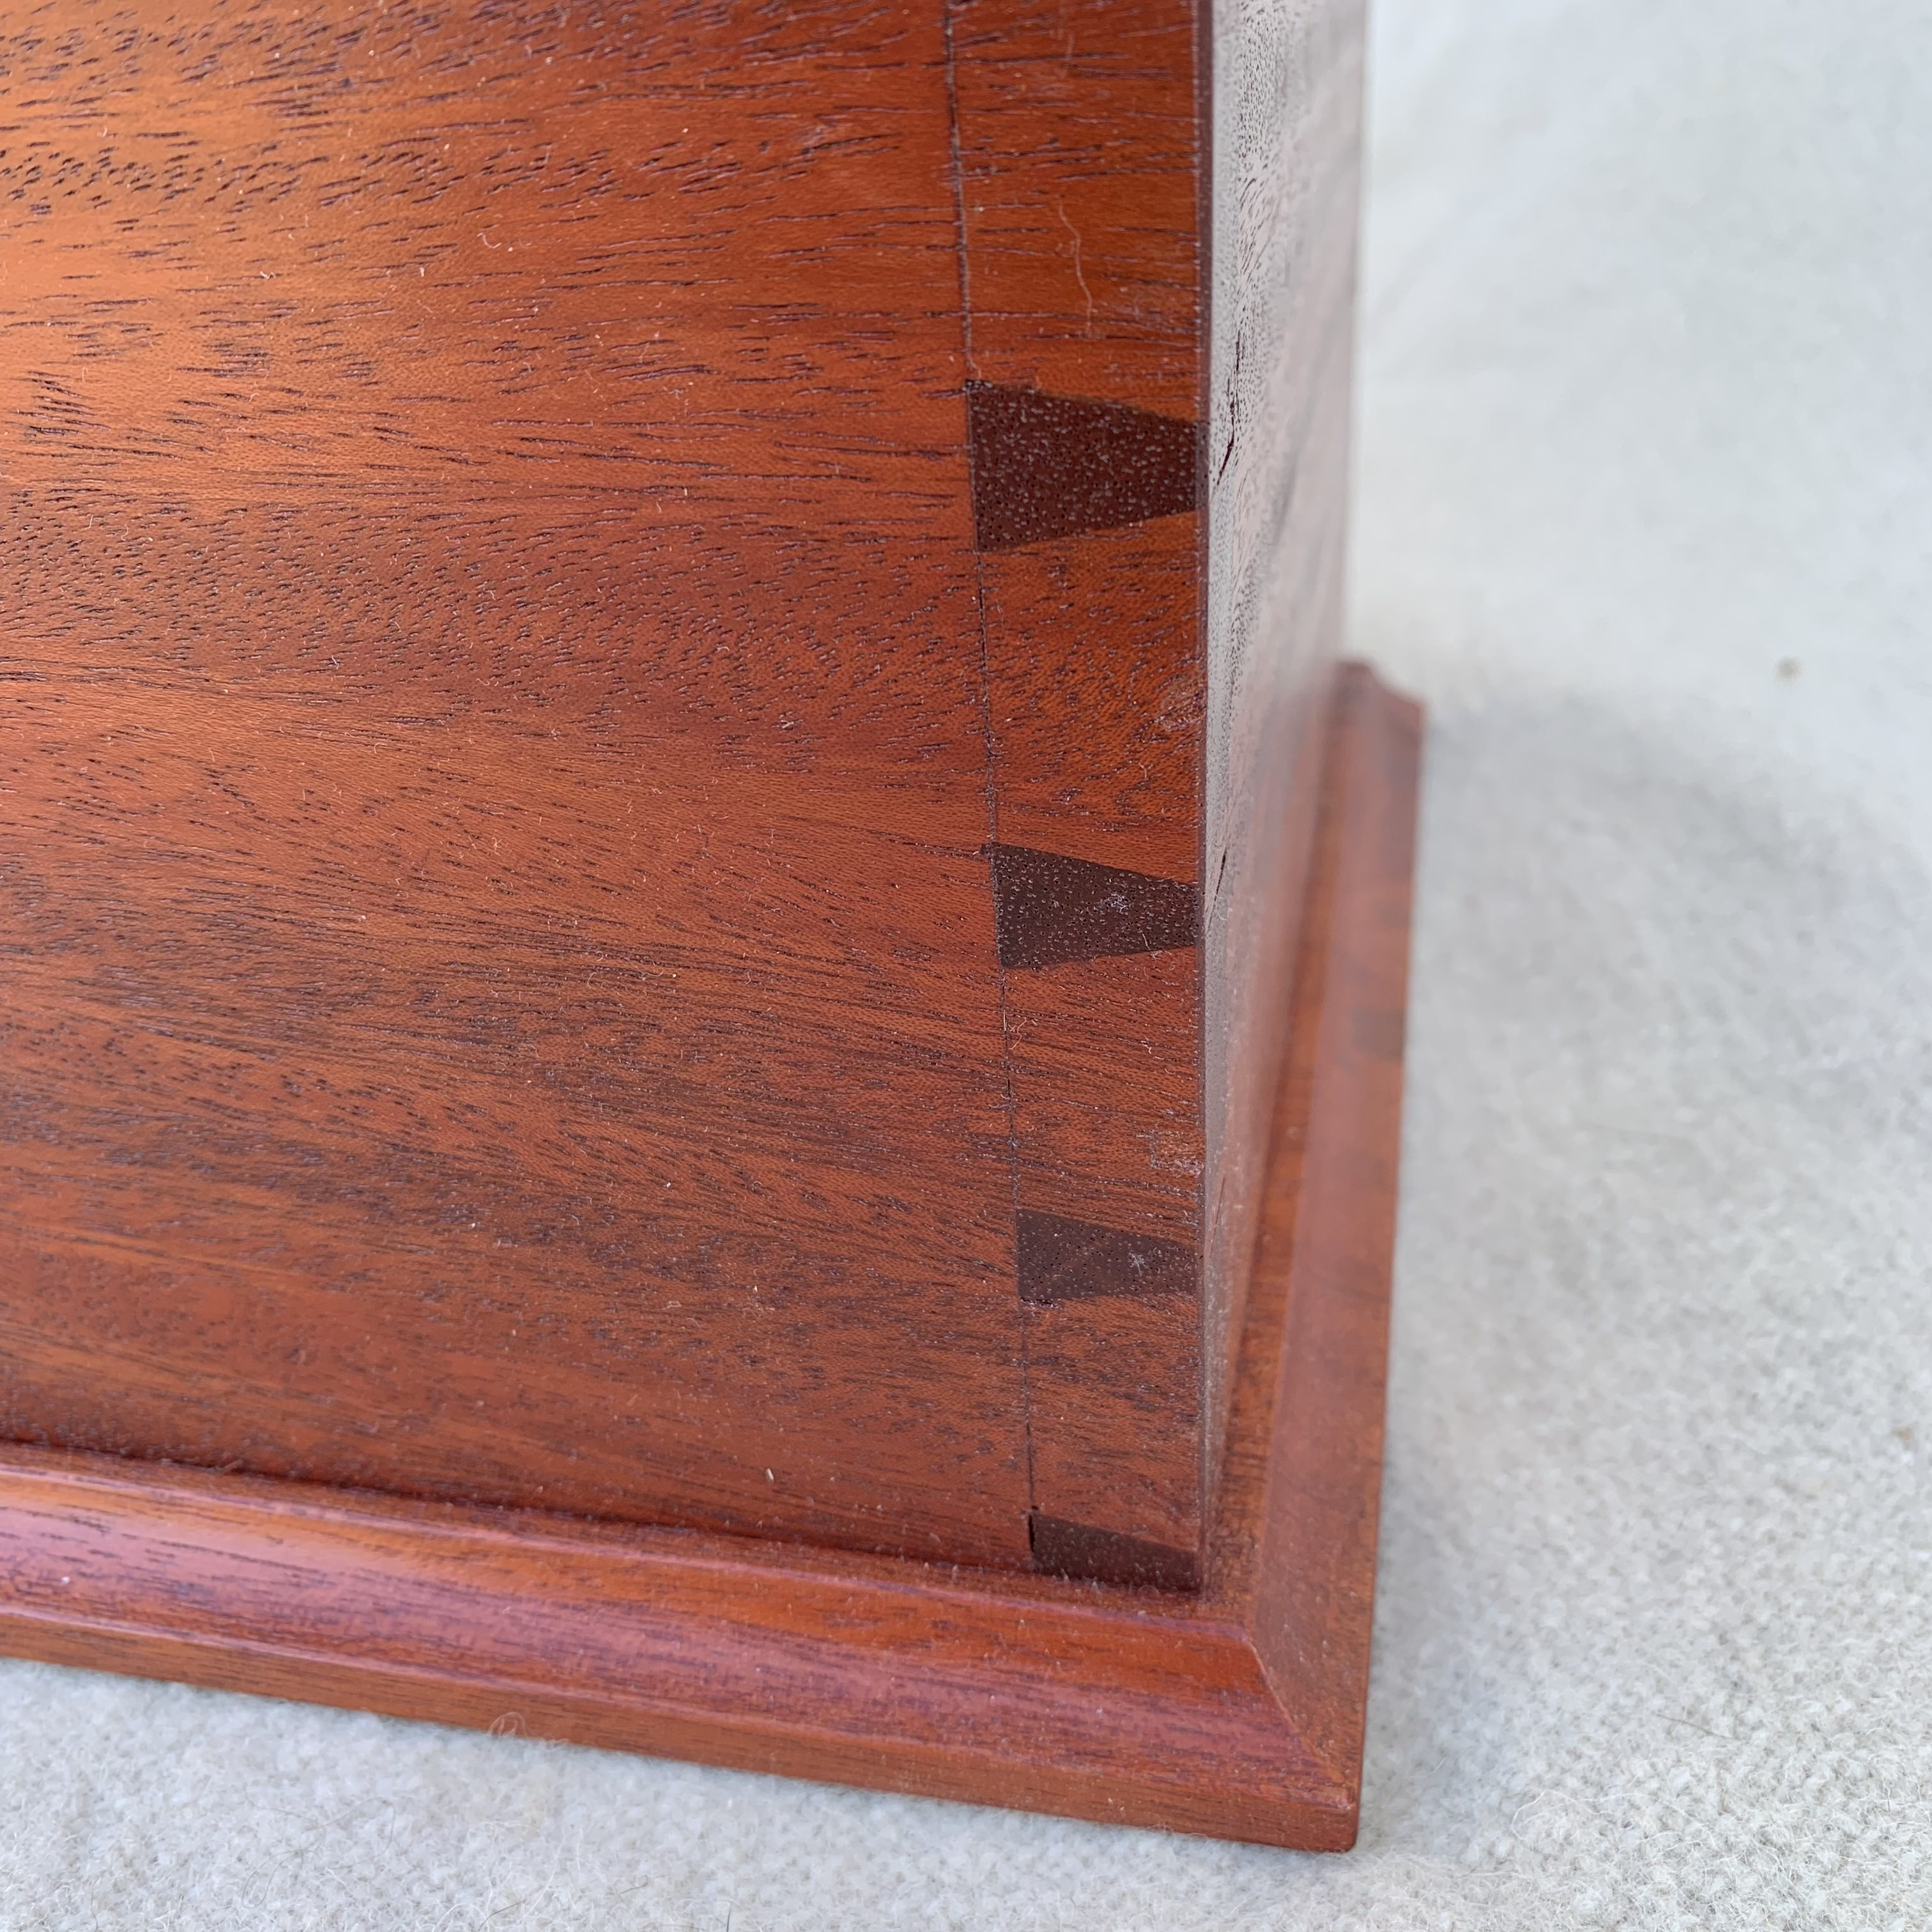 Table box detail